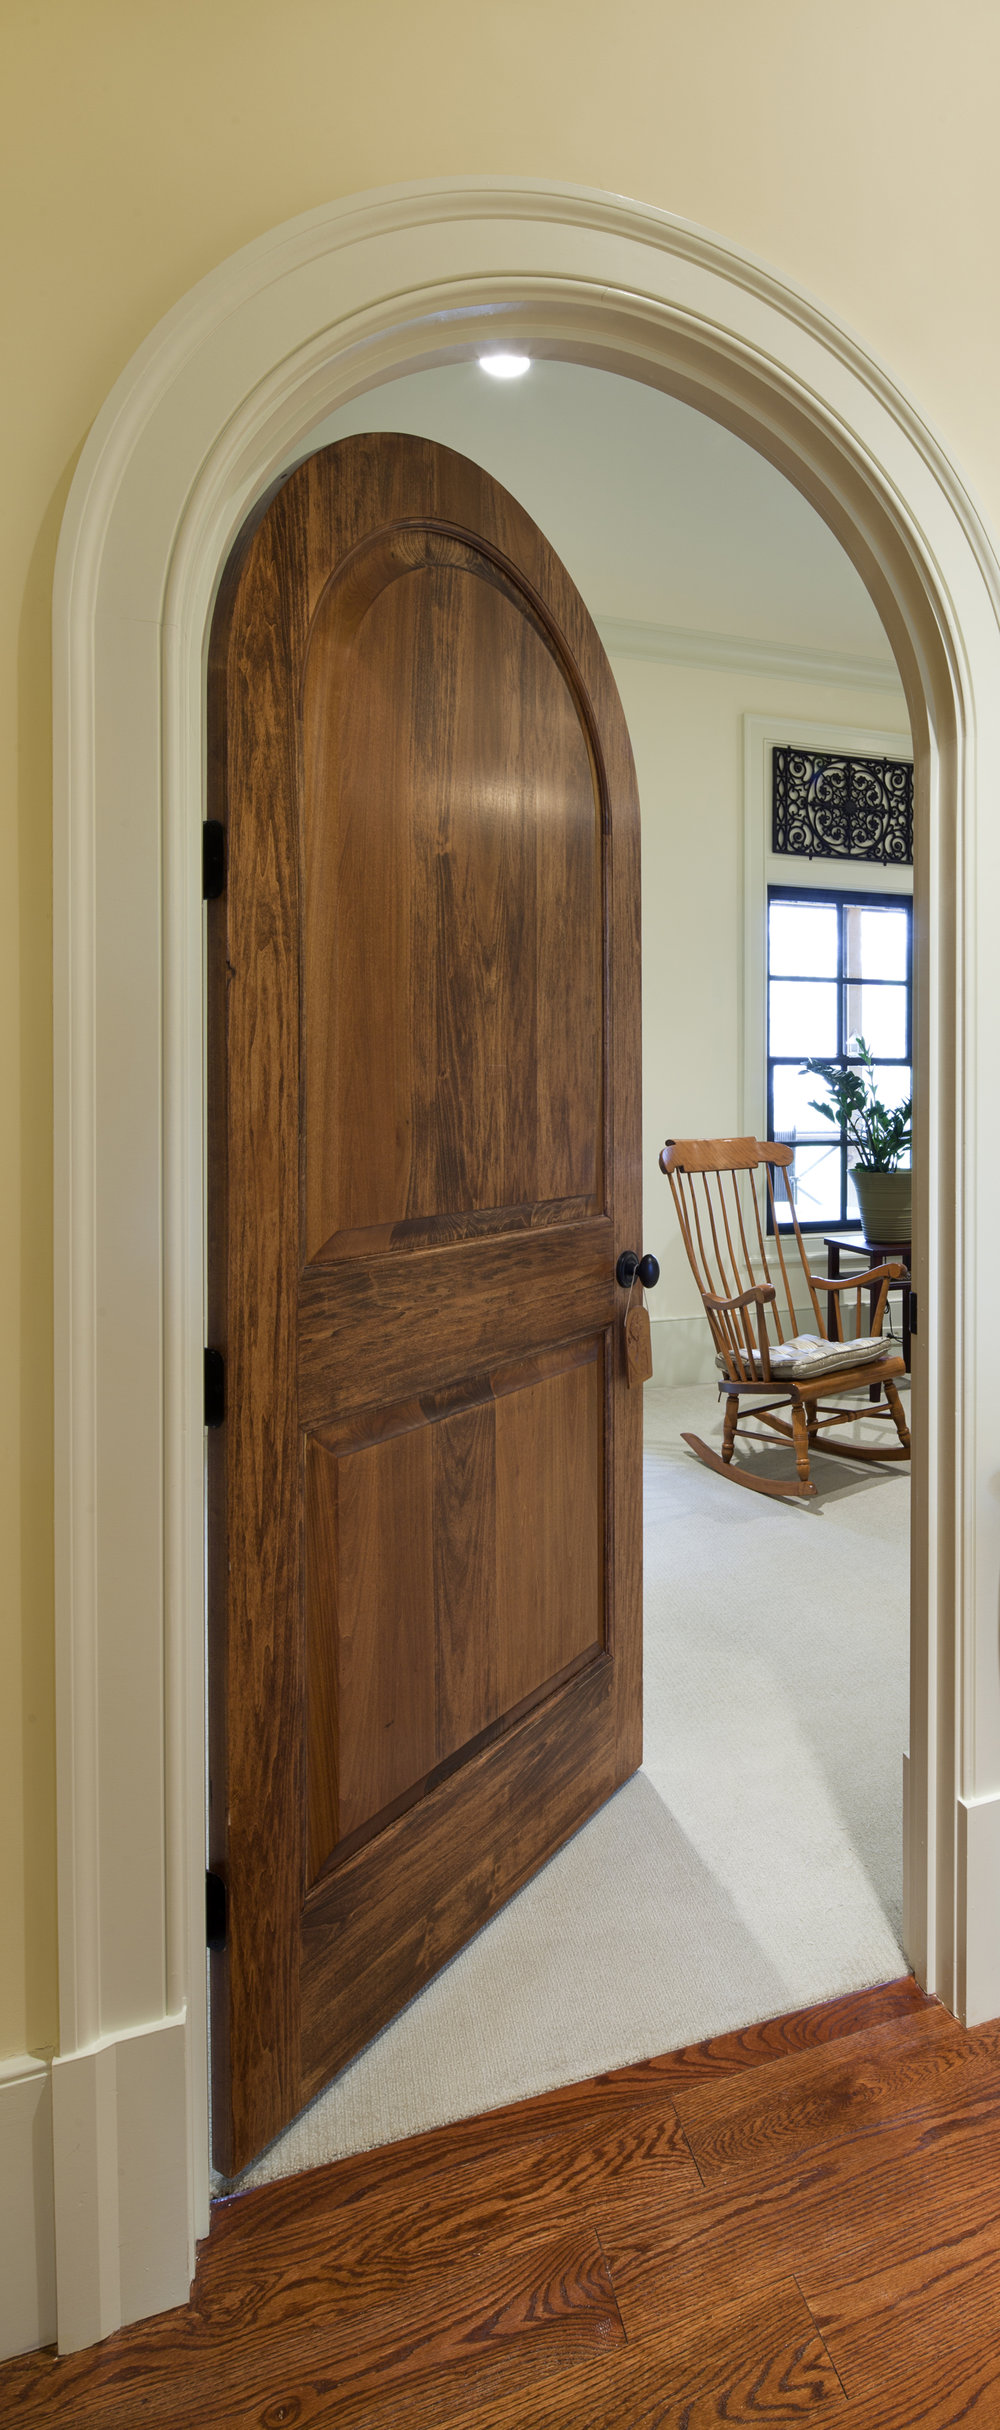 RiversideInt9 arched door cropped.jpg